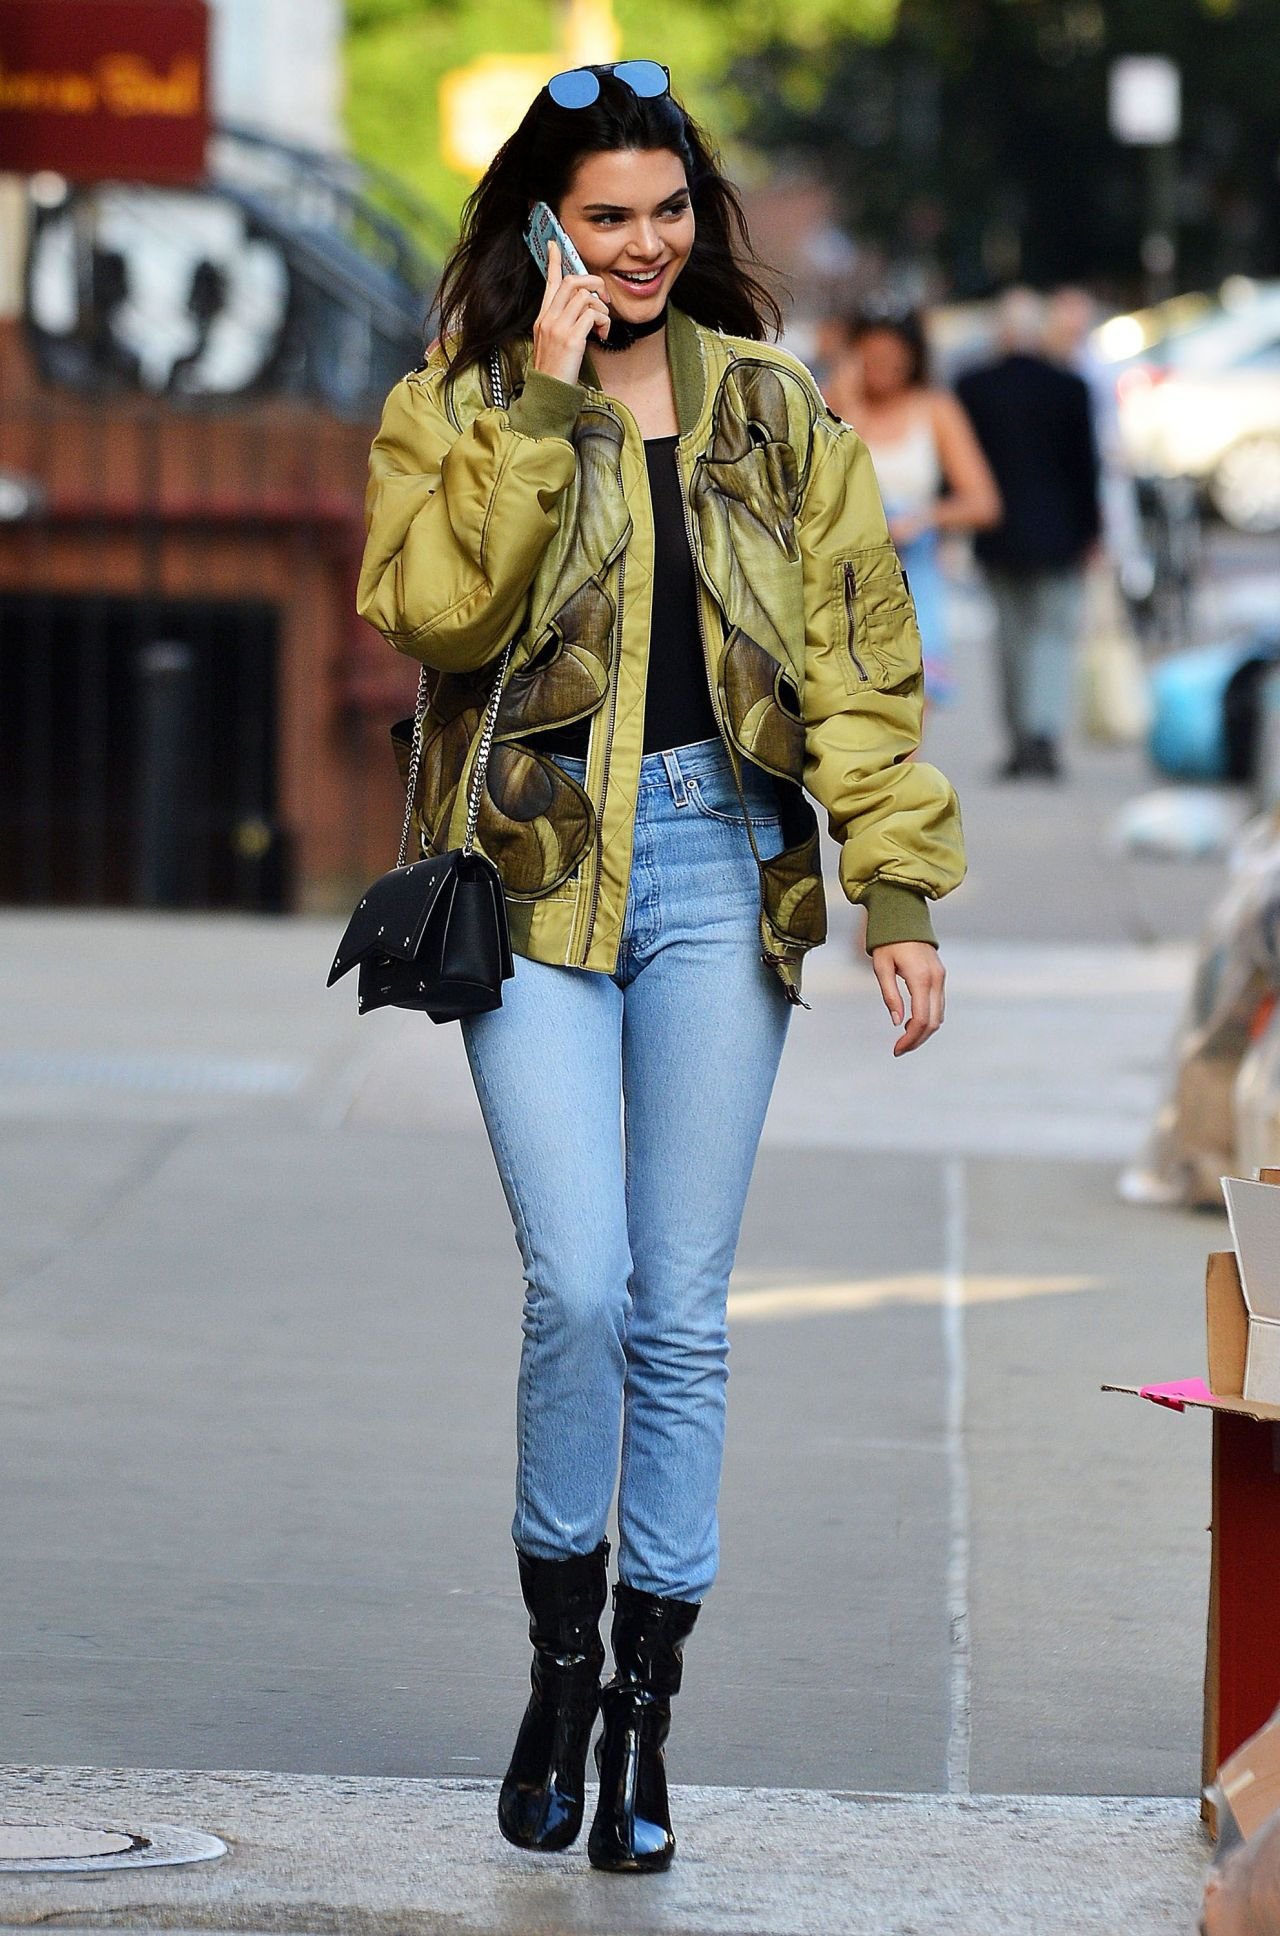 Kendall Jenner Urban Outfit \u2013 New York City 6/21/2016